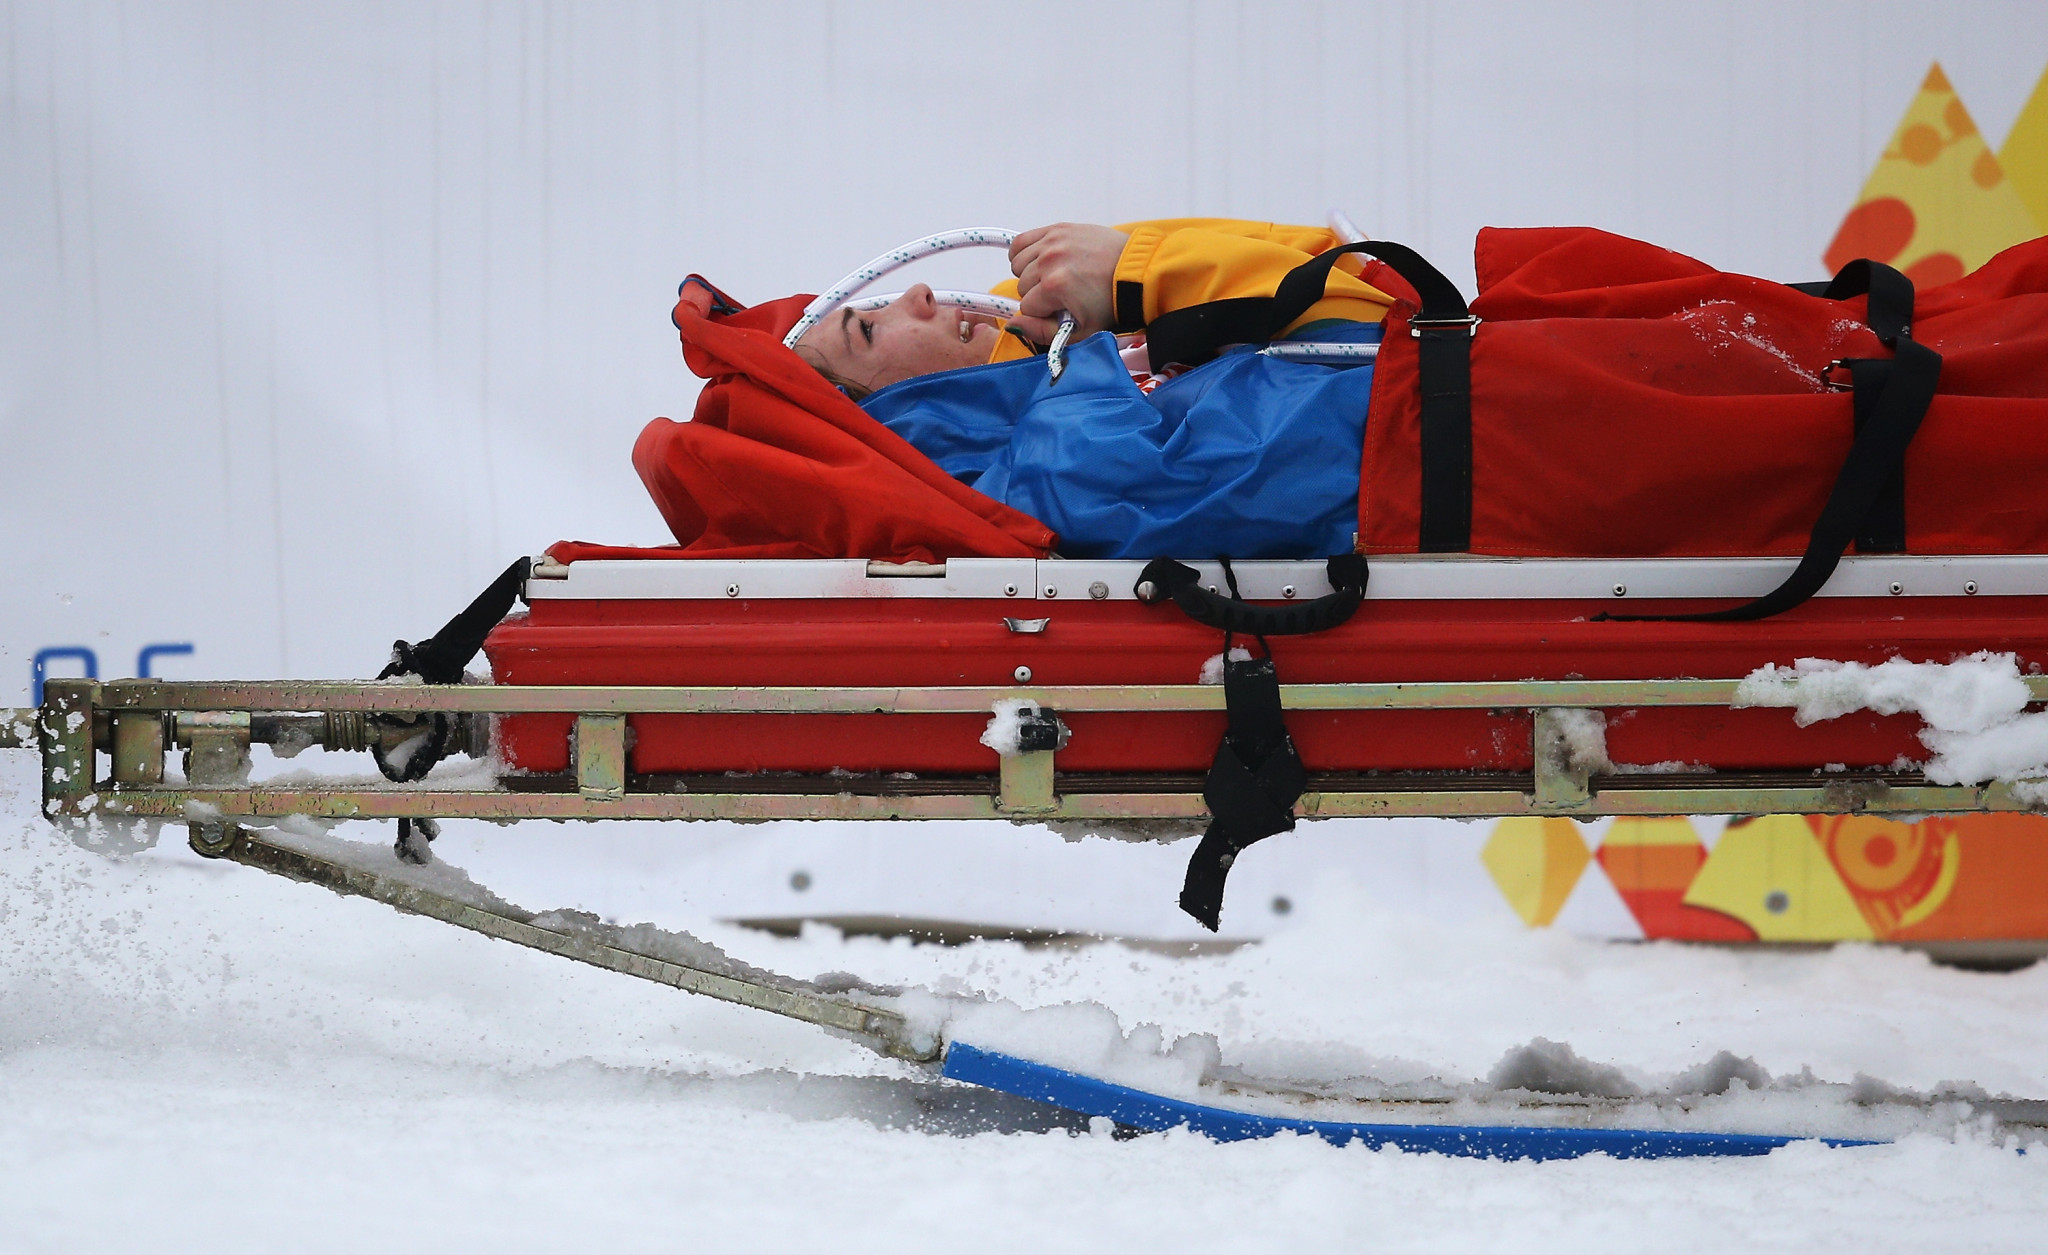 Joany Badenhorst was forced to leave the 2014 Paralympic Games in Sochi on a stretcher ©Getty Images